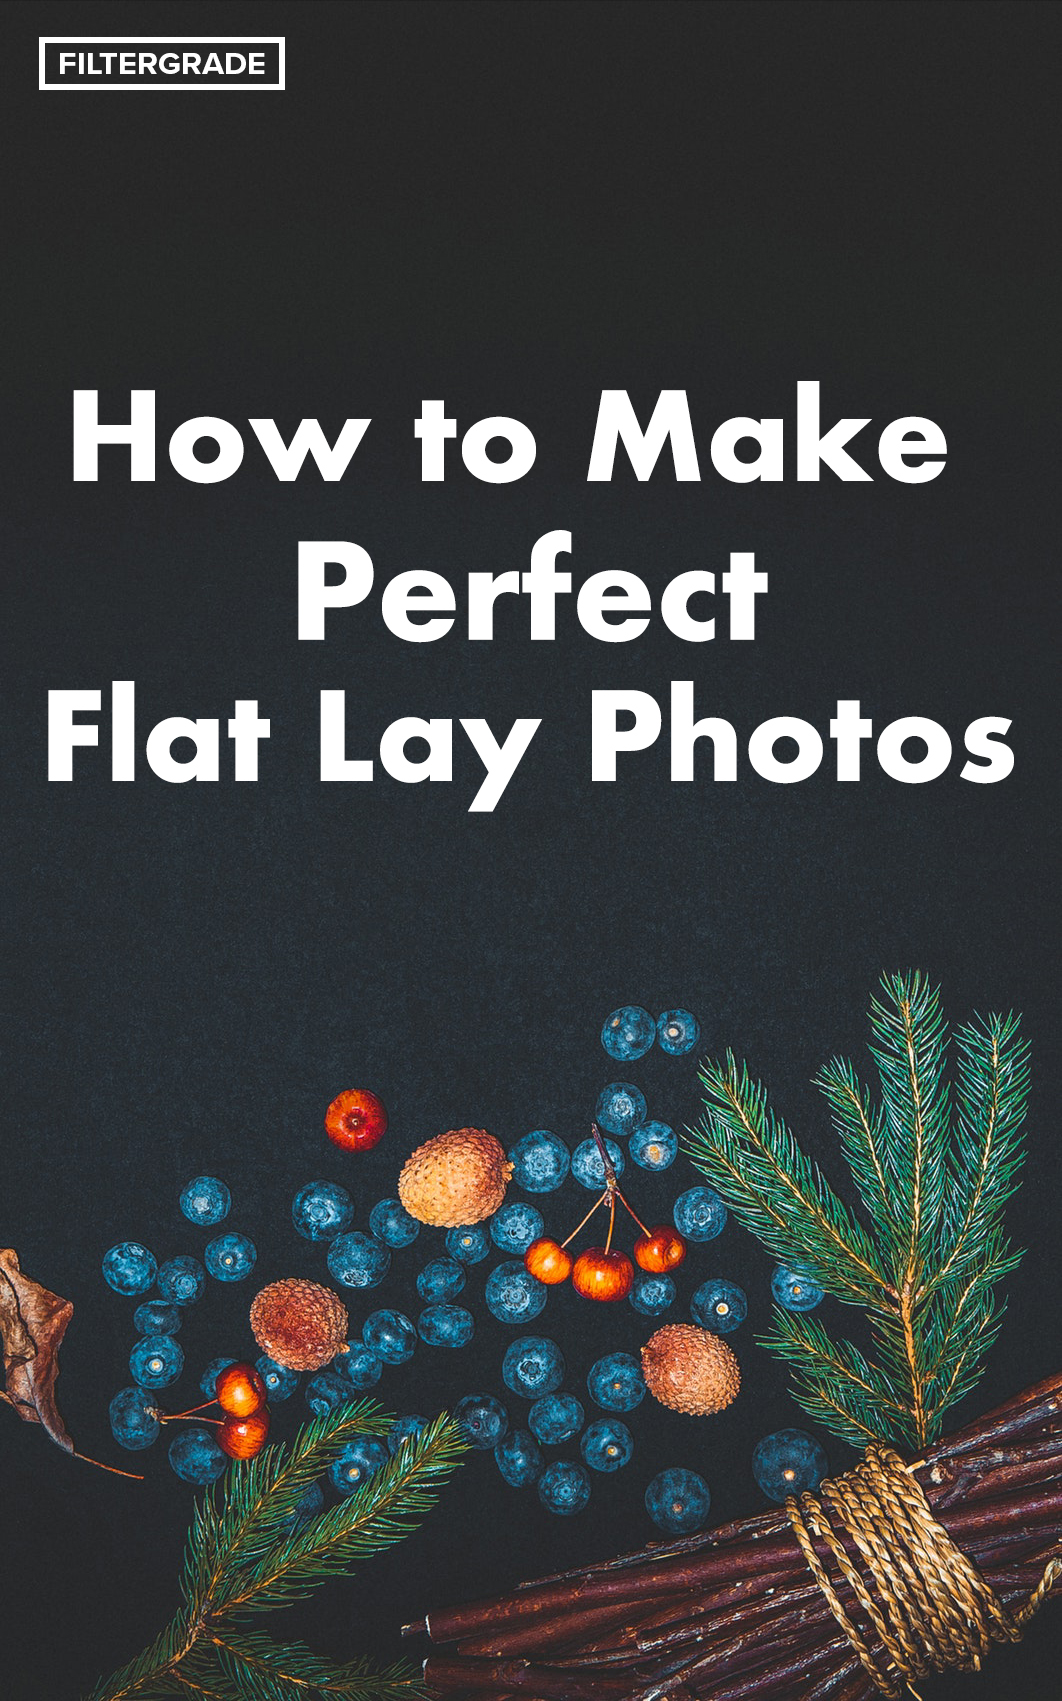 How to Make Perfect Flat Lay Photos